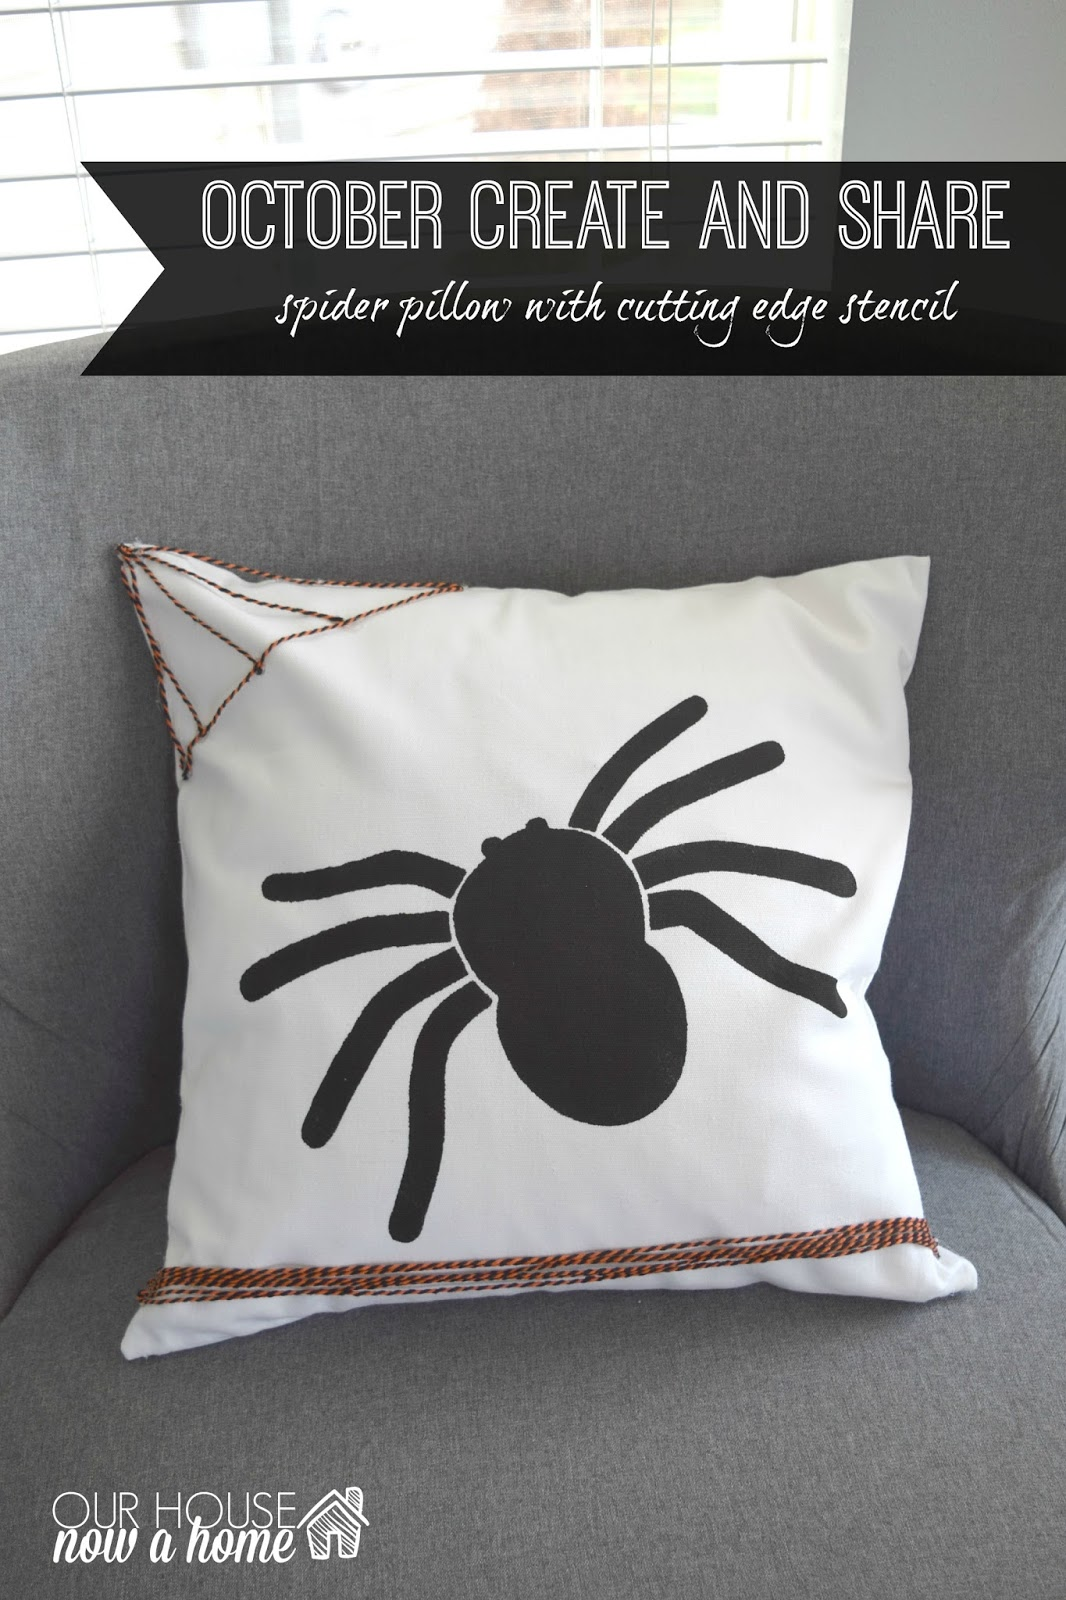 october create and share spider pillow with cutting edge stencil